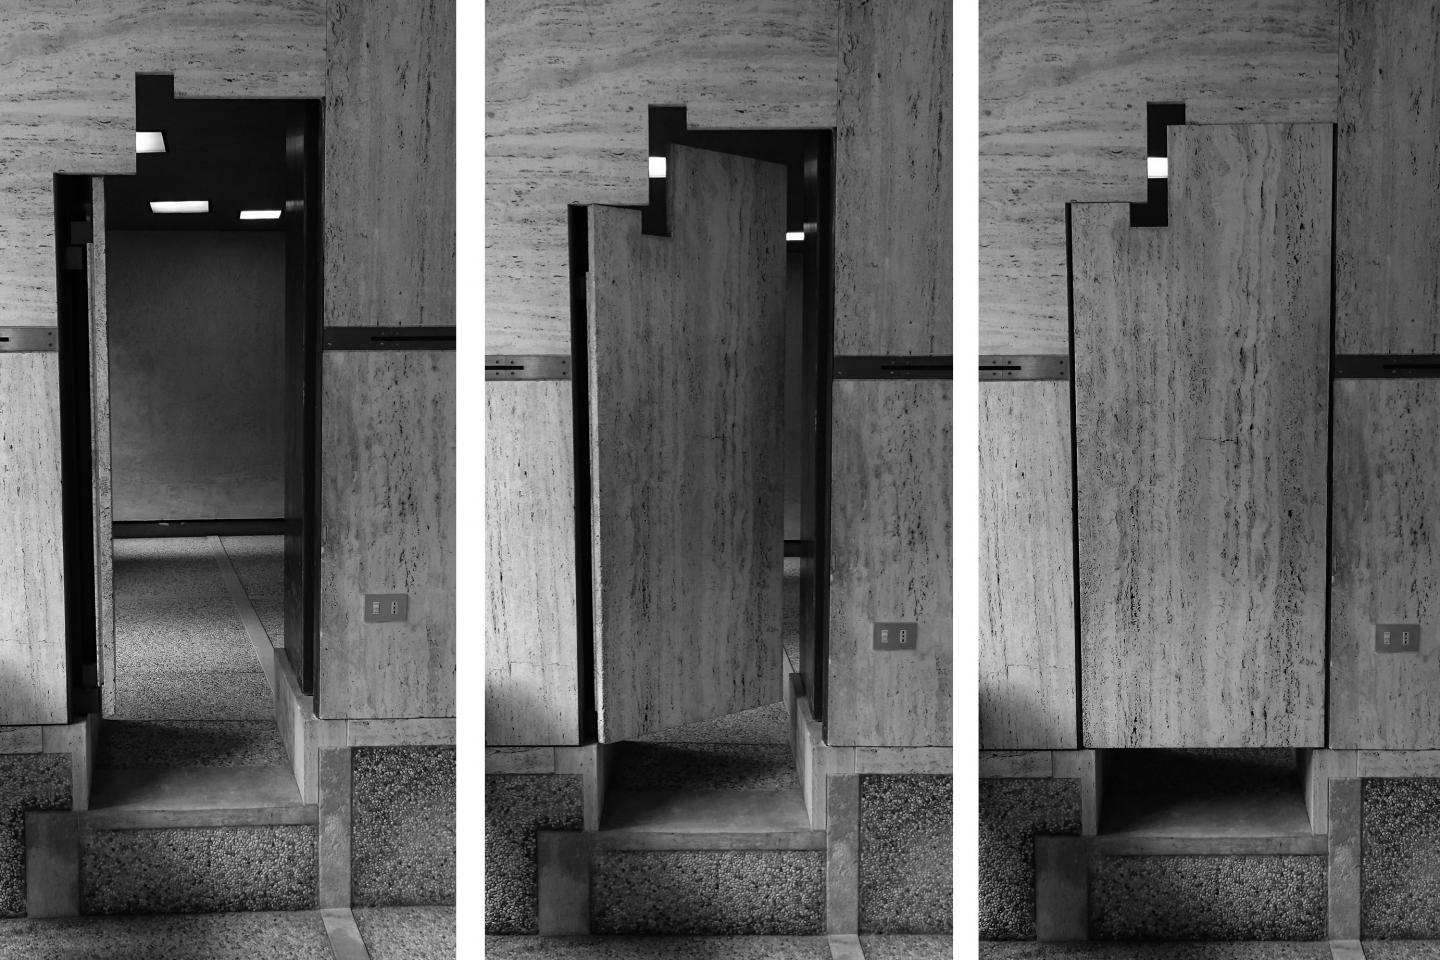 Three rectangular black-and-white images of wooden doors side-by-side.